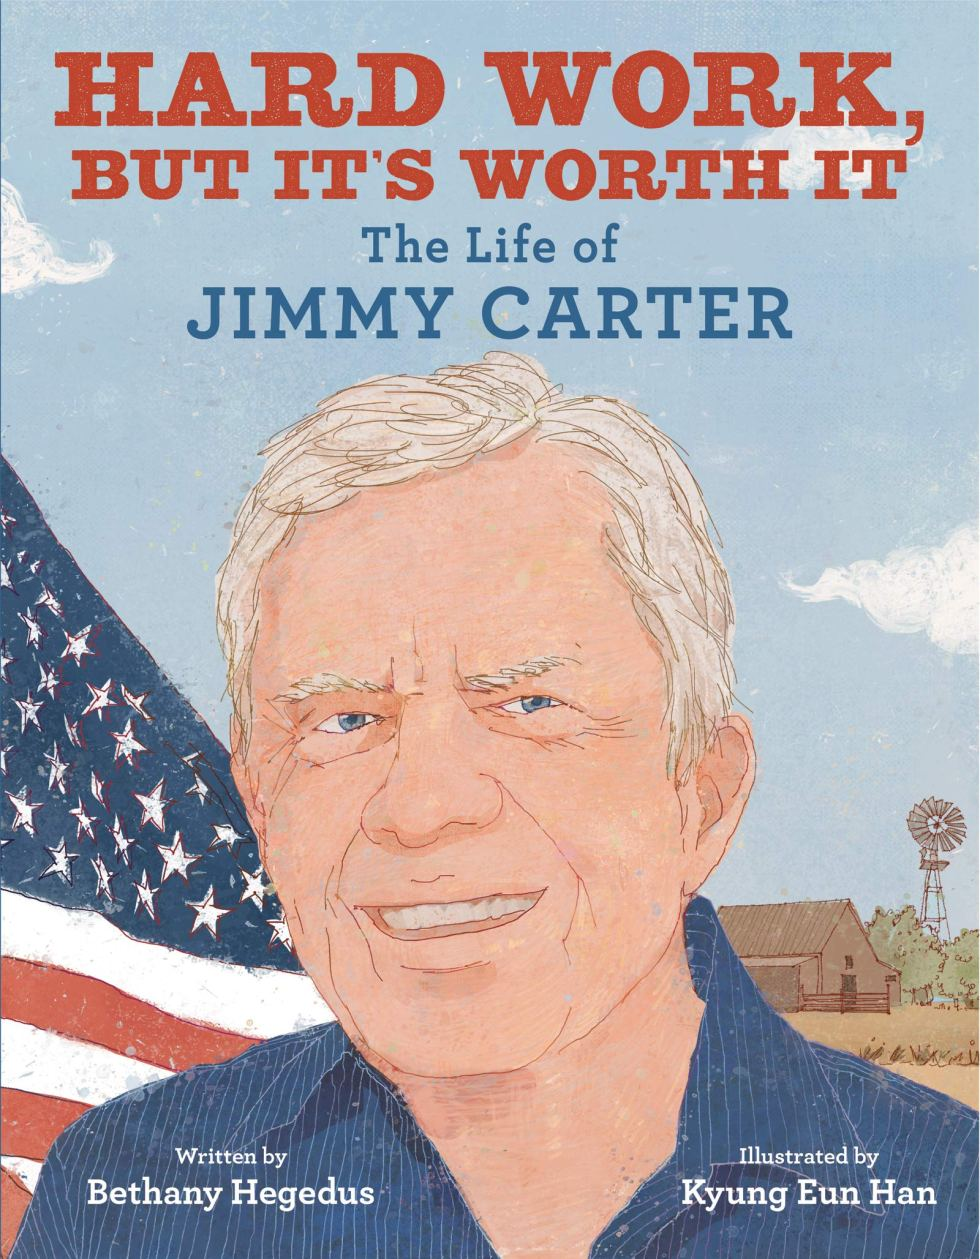 The Hard Work But It's Worth It: The Life of Jimmy Carter book makes a fun gift for fans of the U.S. president